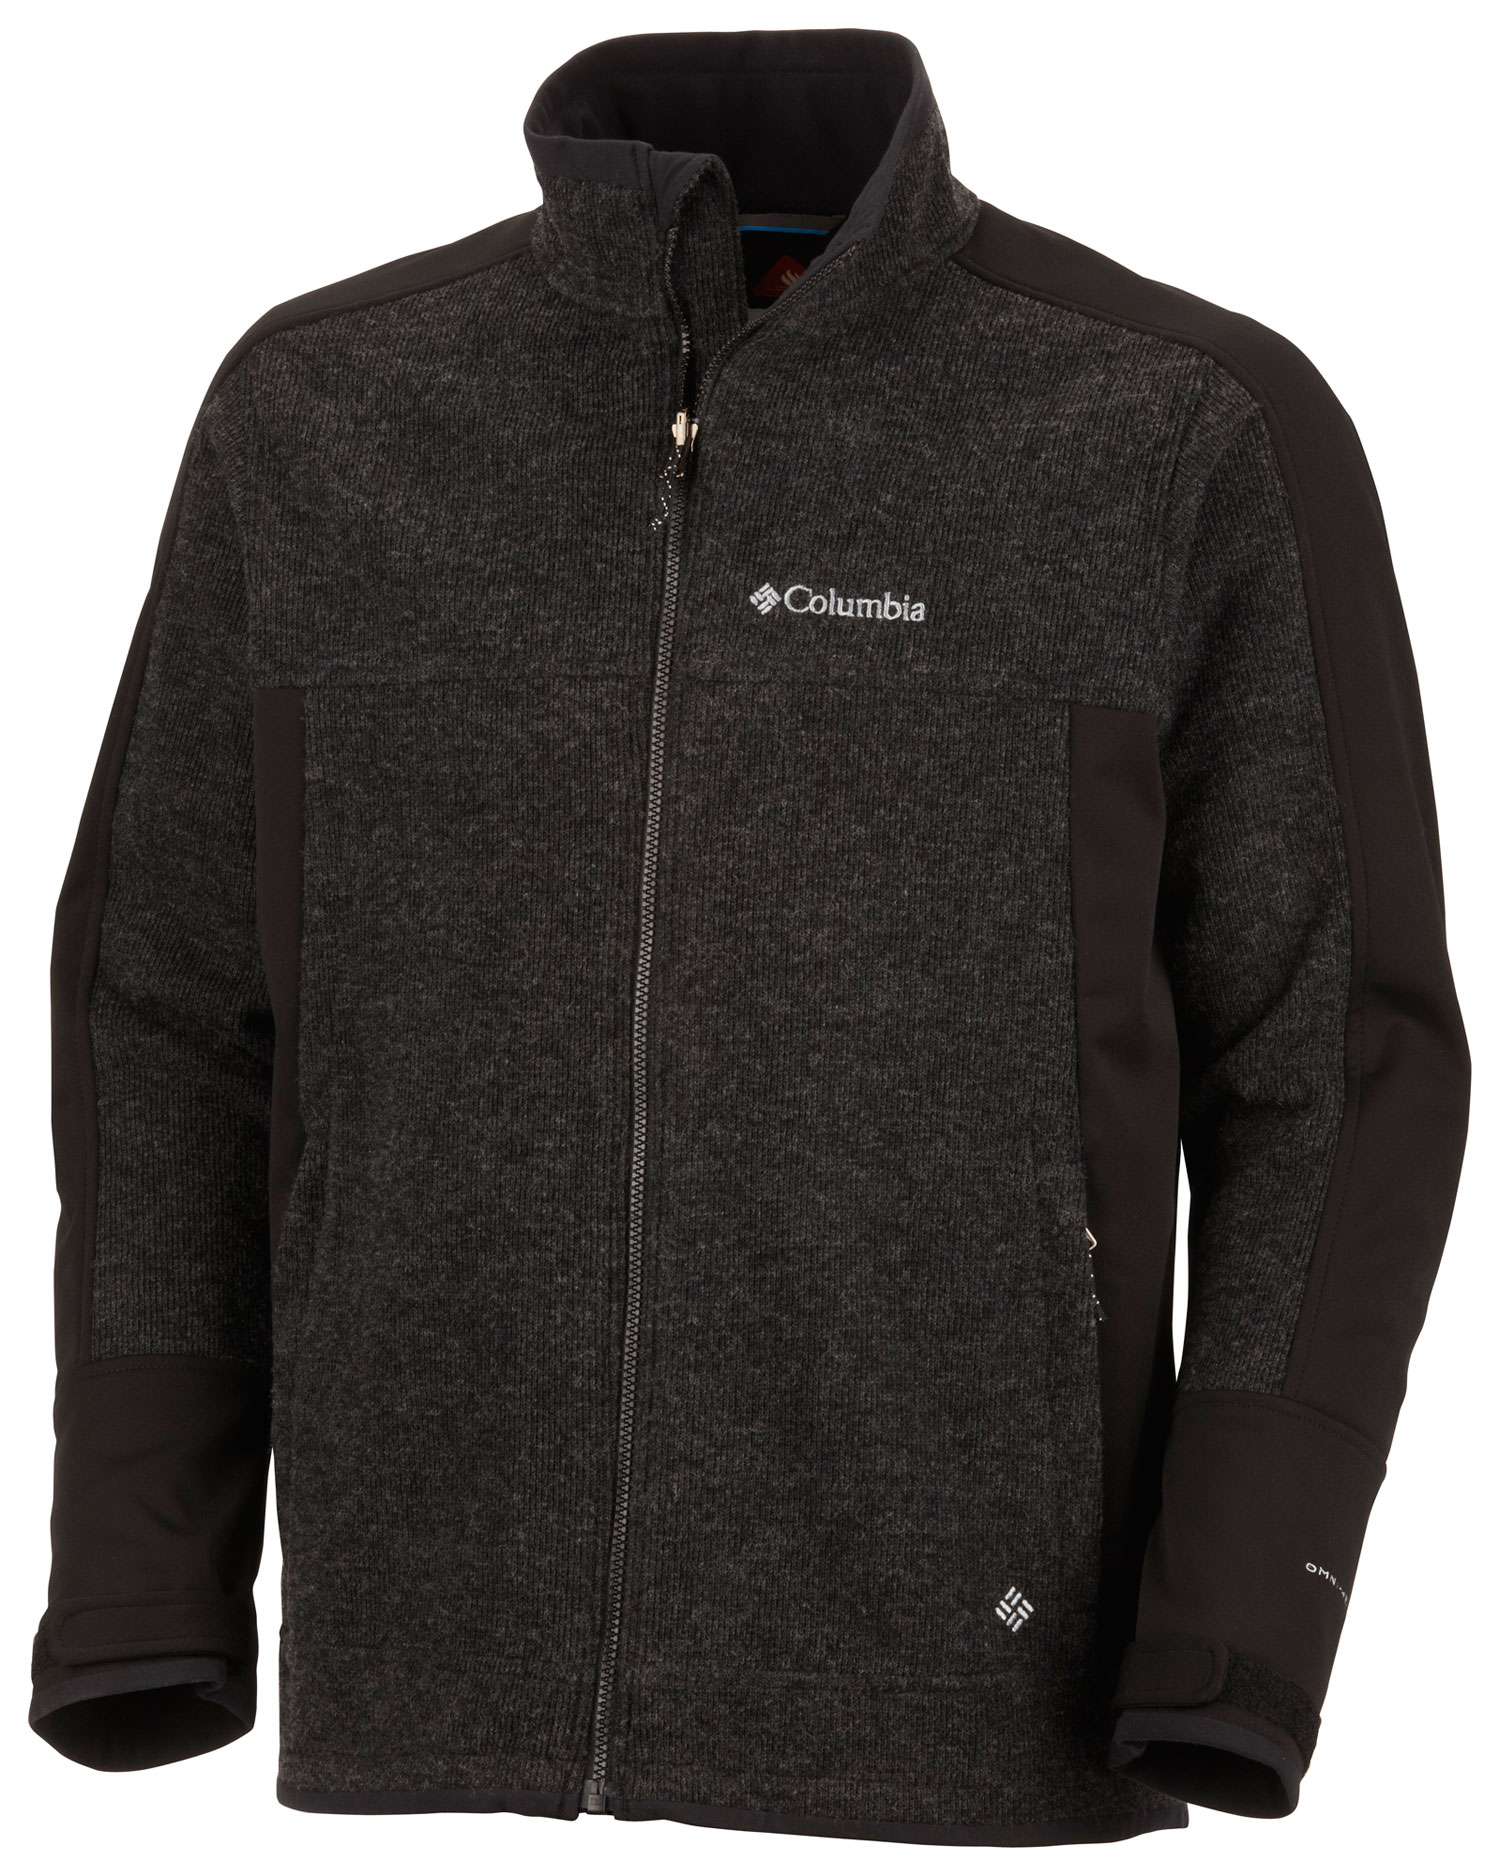 Key Features of the Columbia Grade Max Softshell Jacket: FABRIC Shell: 43% wool/39% polyester/18% nylon, 100% polyester windblock. Lining: 100% polyester Thermal Reflective. FIT Modern Classic Omni-Wind Block windproof Omni-Heat thermal reflective Omni-Shield advanced repellency Zip-in and 3-point Interchange System Zip-closed pockets Adjustable cuff tabs - $119.95